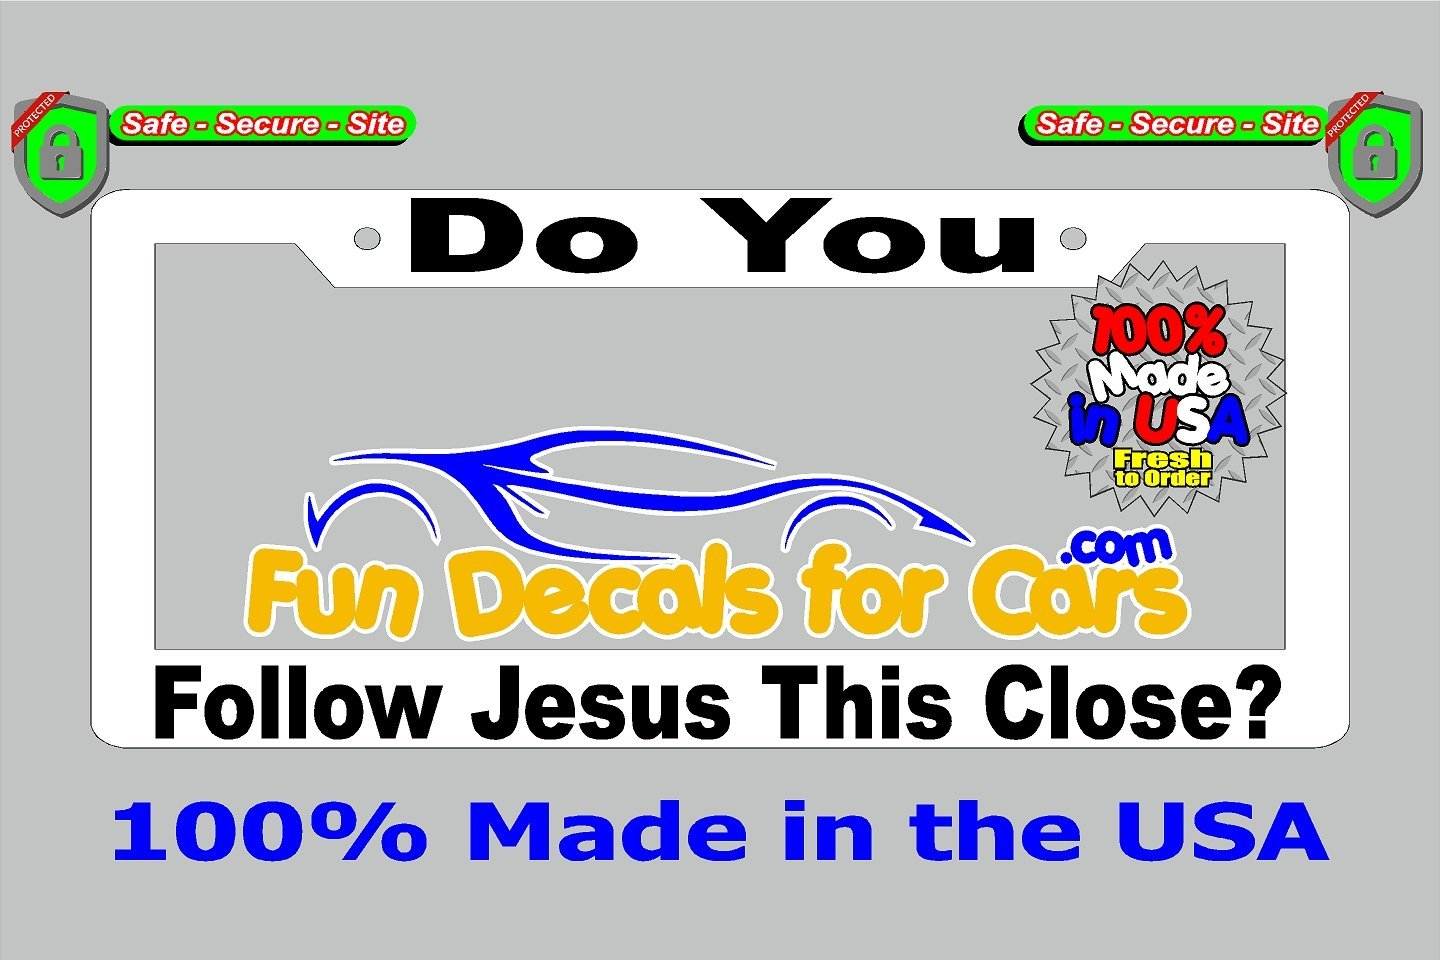 Do You Follow Jesus This Close License Plate Frame White